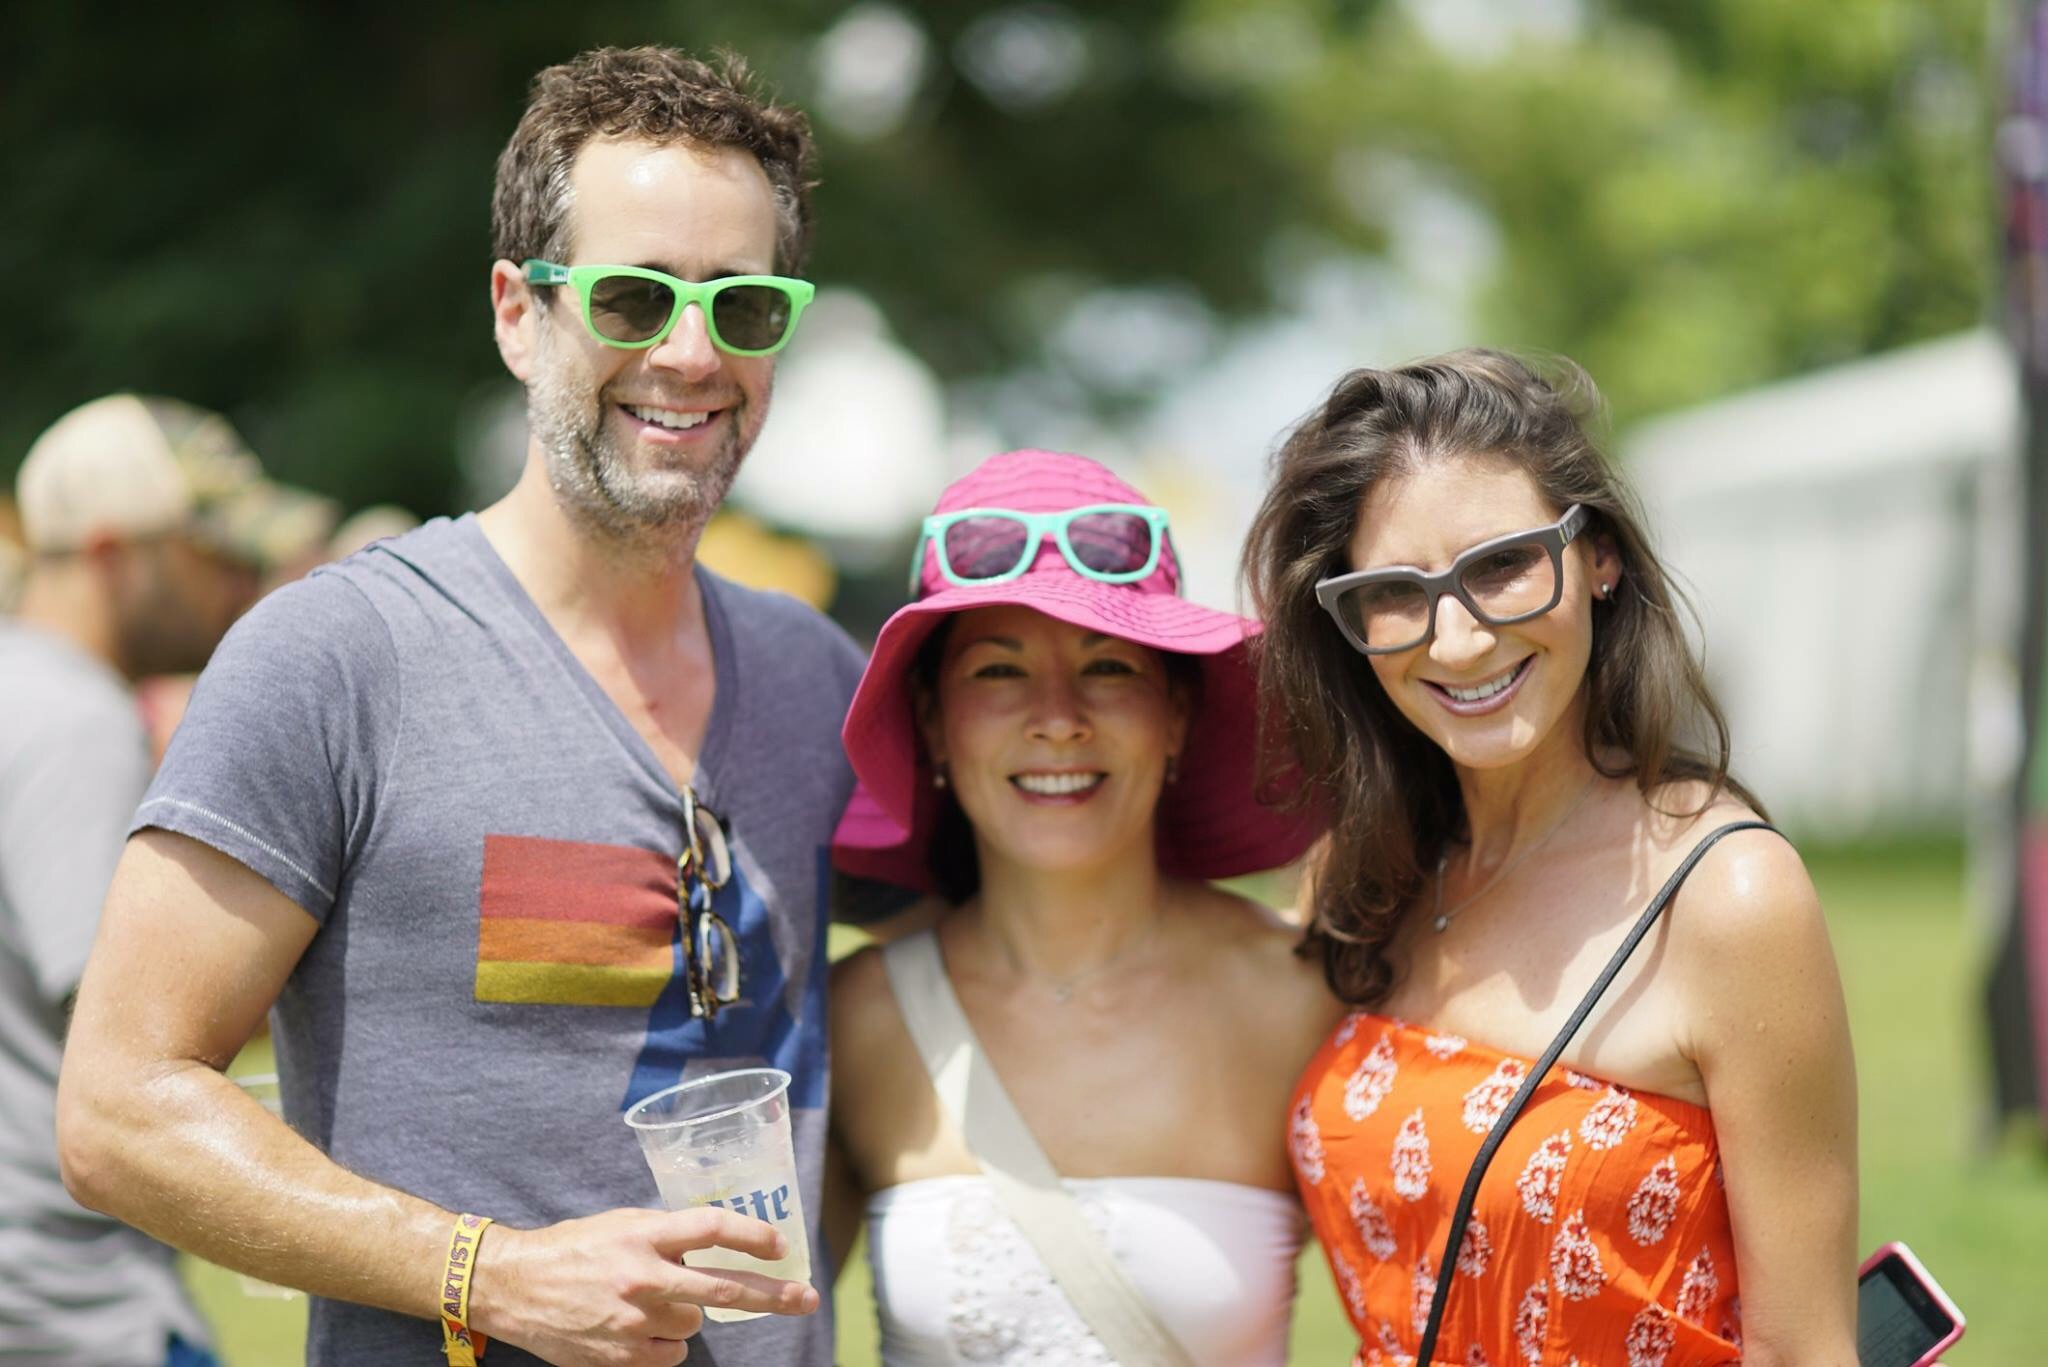 Bonnaro Music Festival, left to right:  Michael Lazerow, Former Founder and CEO Buddy Media and CEO of Lazerow Ventures, Sandra Jonas Desguin, CEO Maiden-Stone and Tami Holzman (Me)